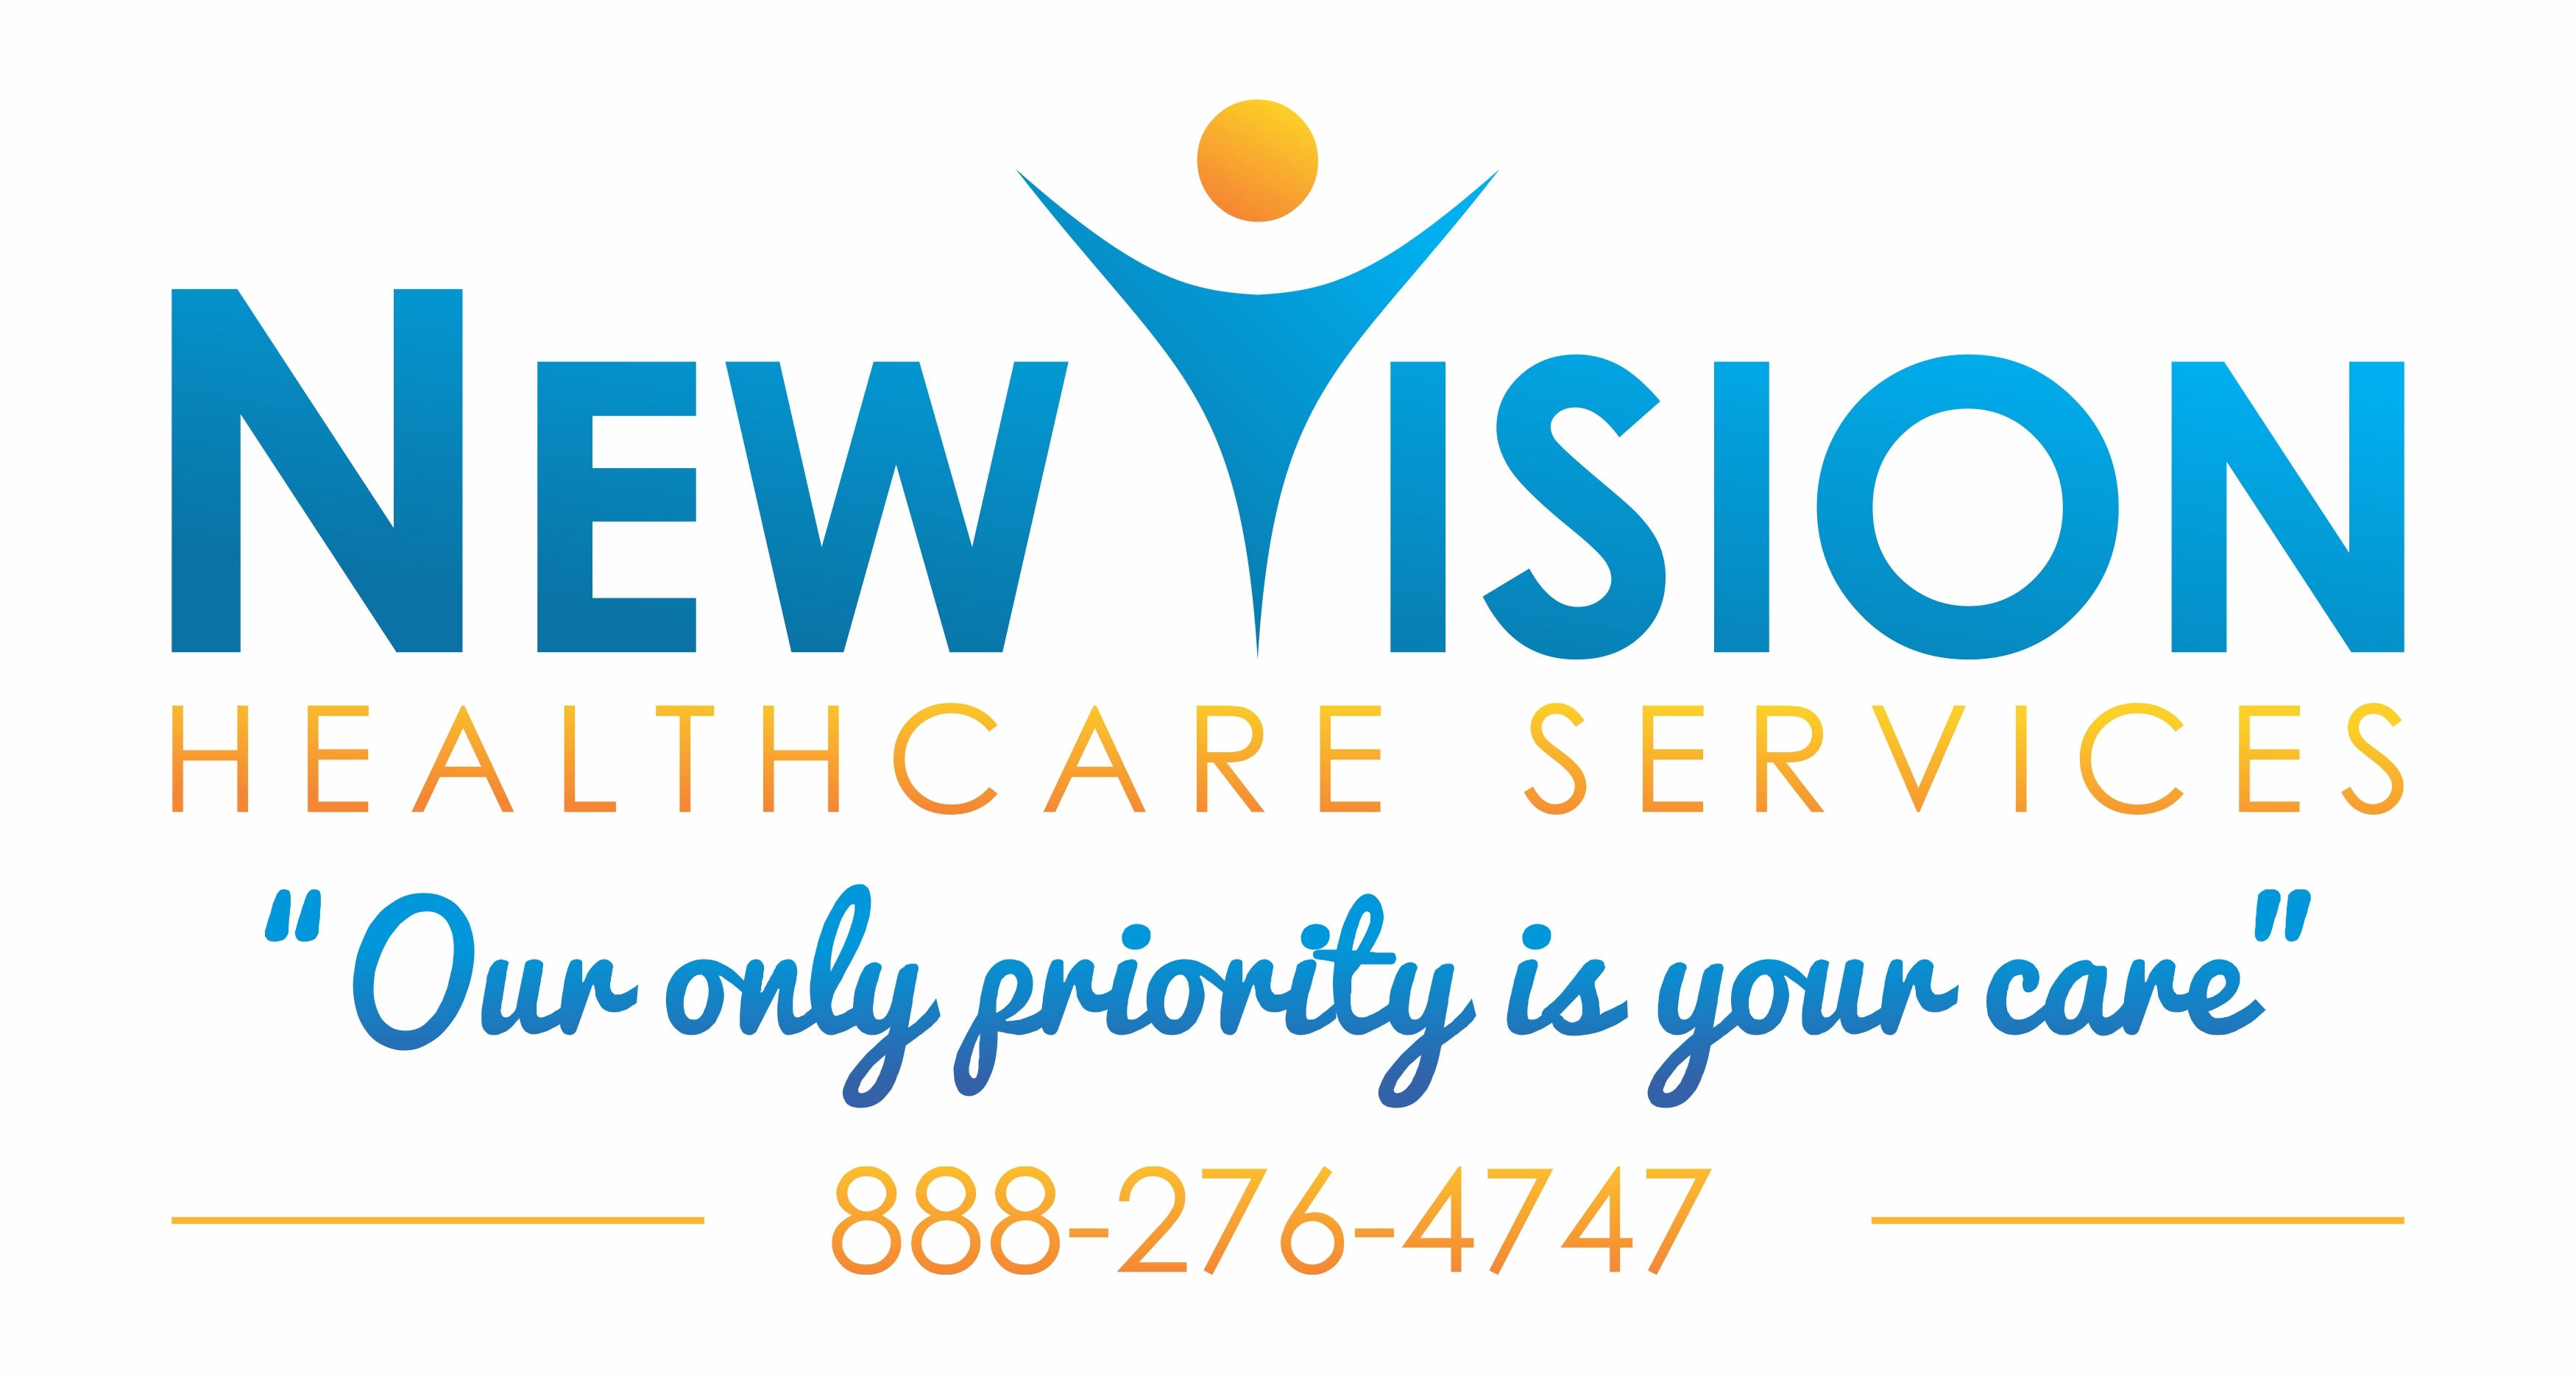 New Vision Health Care